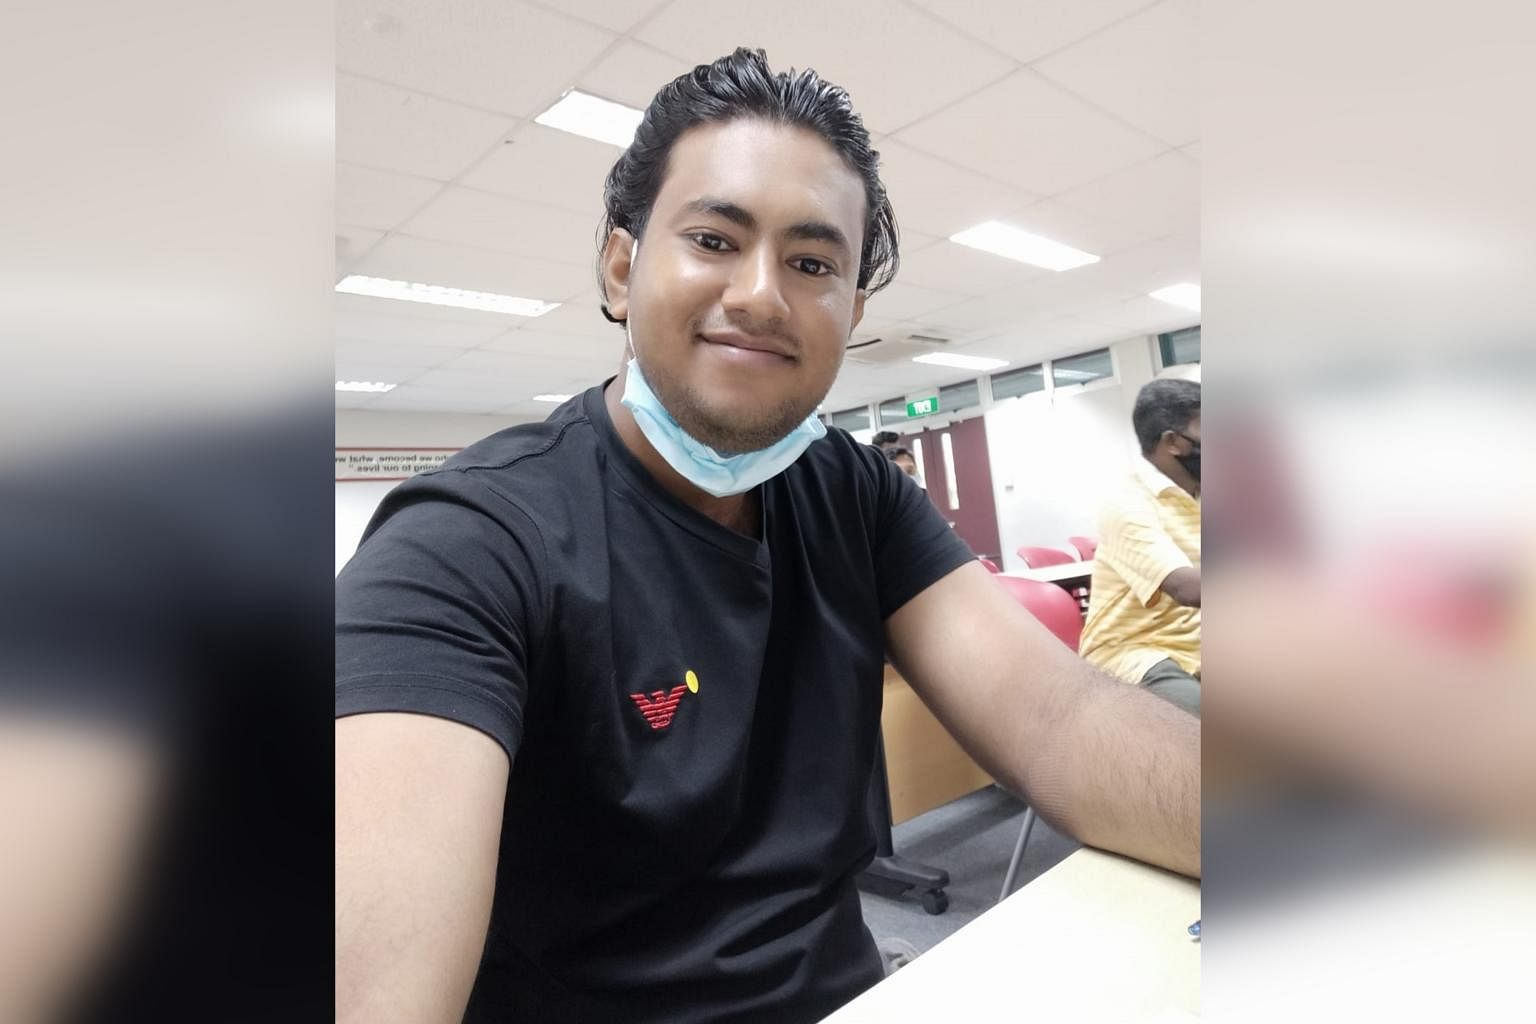 Mr Rubel, 29, a migrant worker from Bangladesh, in a photo taken in Singapore last year while he was on a course on boom lift operations. PHOTO:COURTESY OF RUBEL